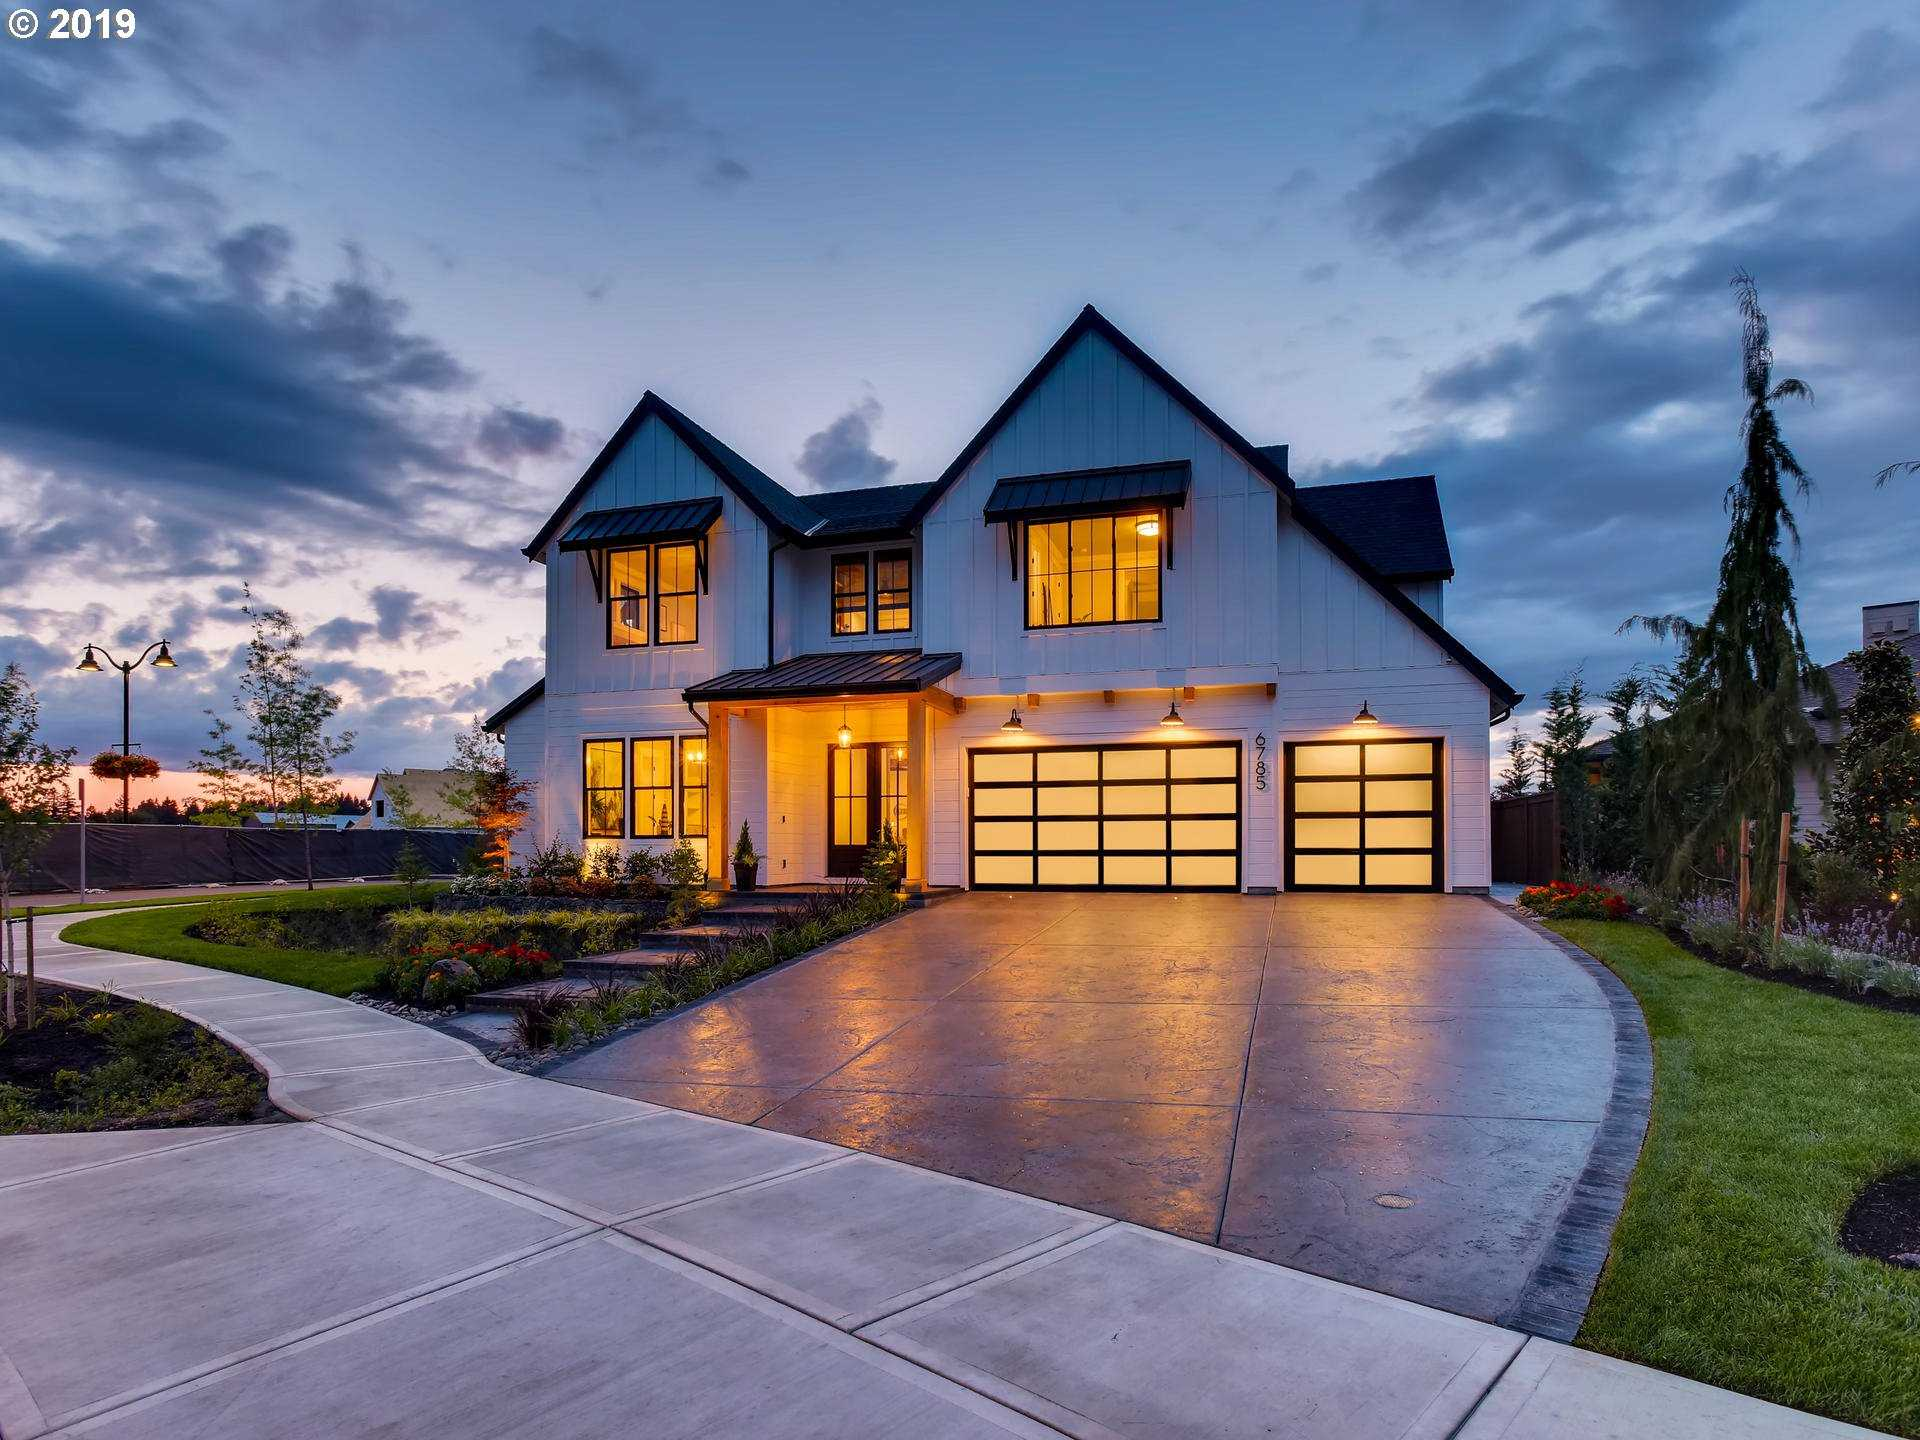 $1,795,000 - 5Br/5Ba -  for Sale in Stafford Meadows, Wilsonville